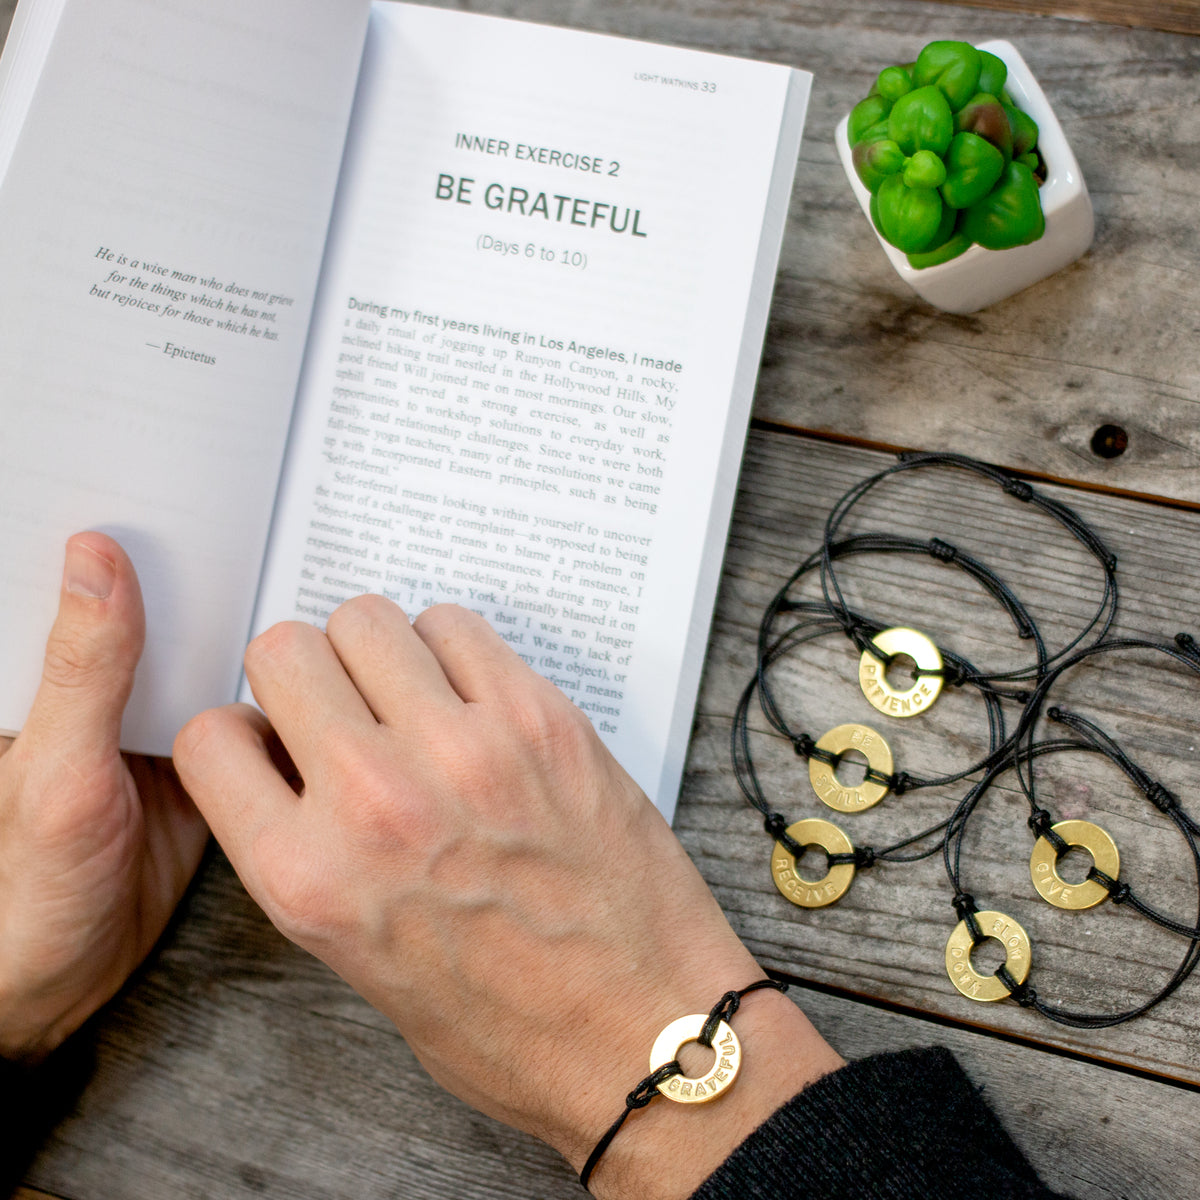 A person reading The Inner Gym book while wearing their MyIntent classic black bracelet